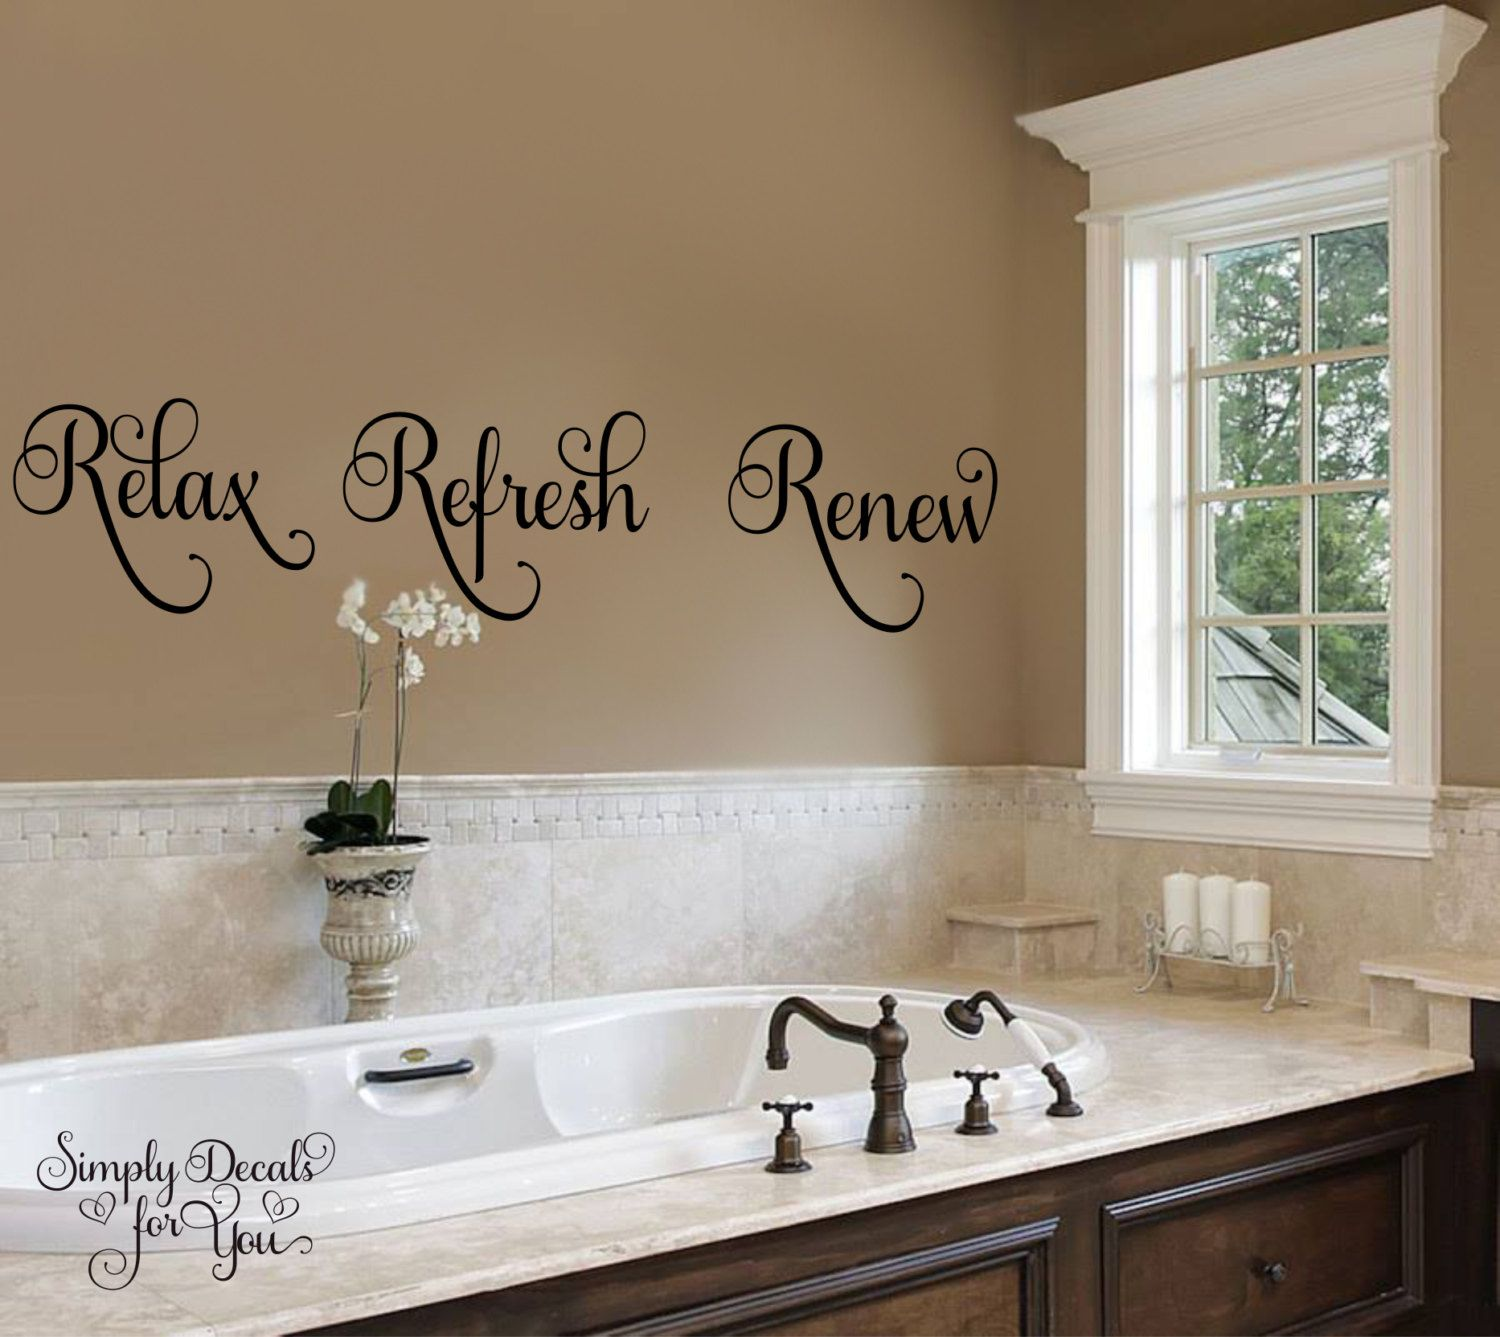 Relax Refresh Renew Bathroom Wall Decal, Bathroom Decal, Wall ...